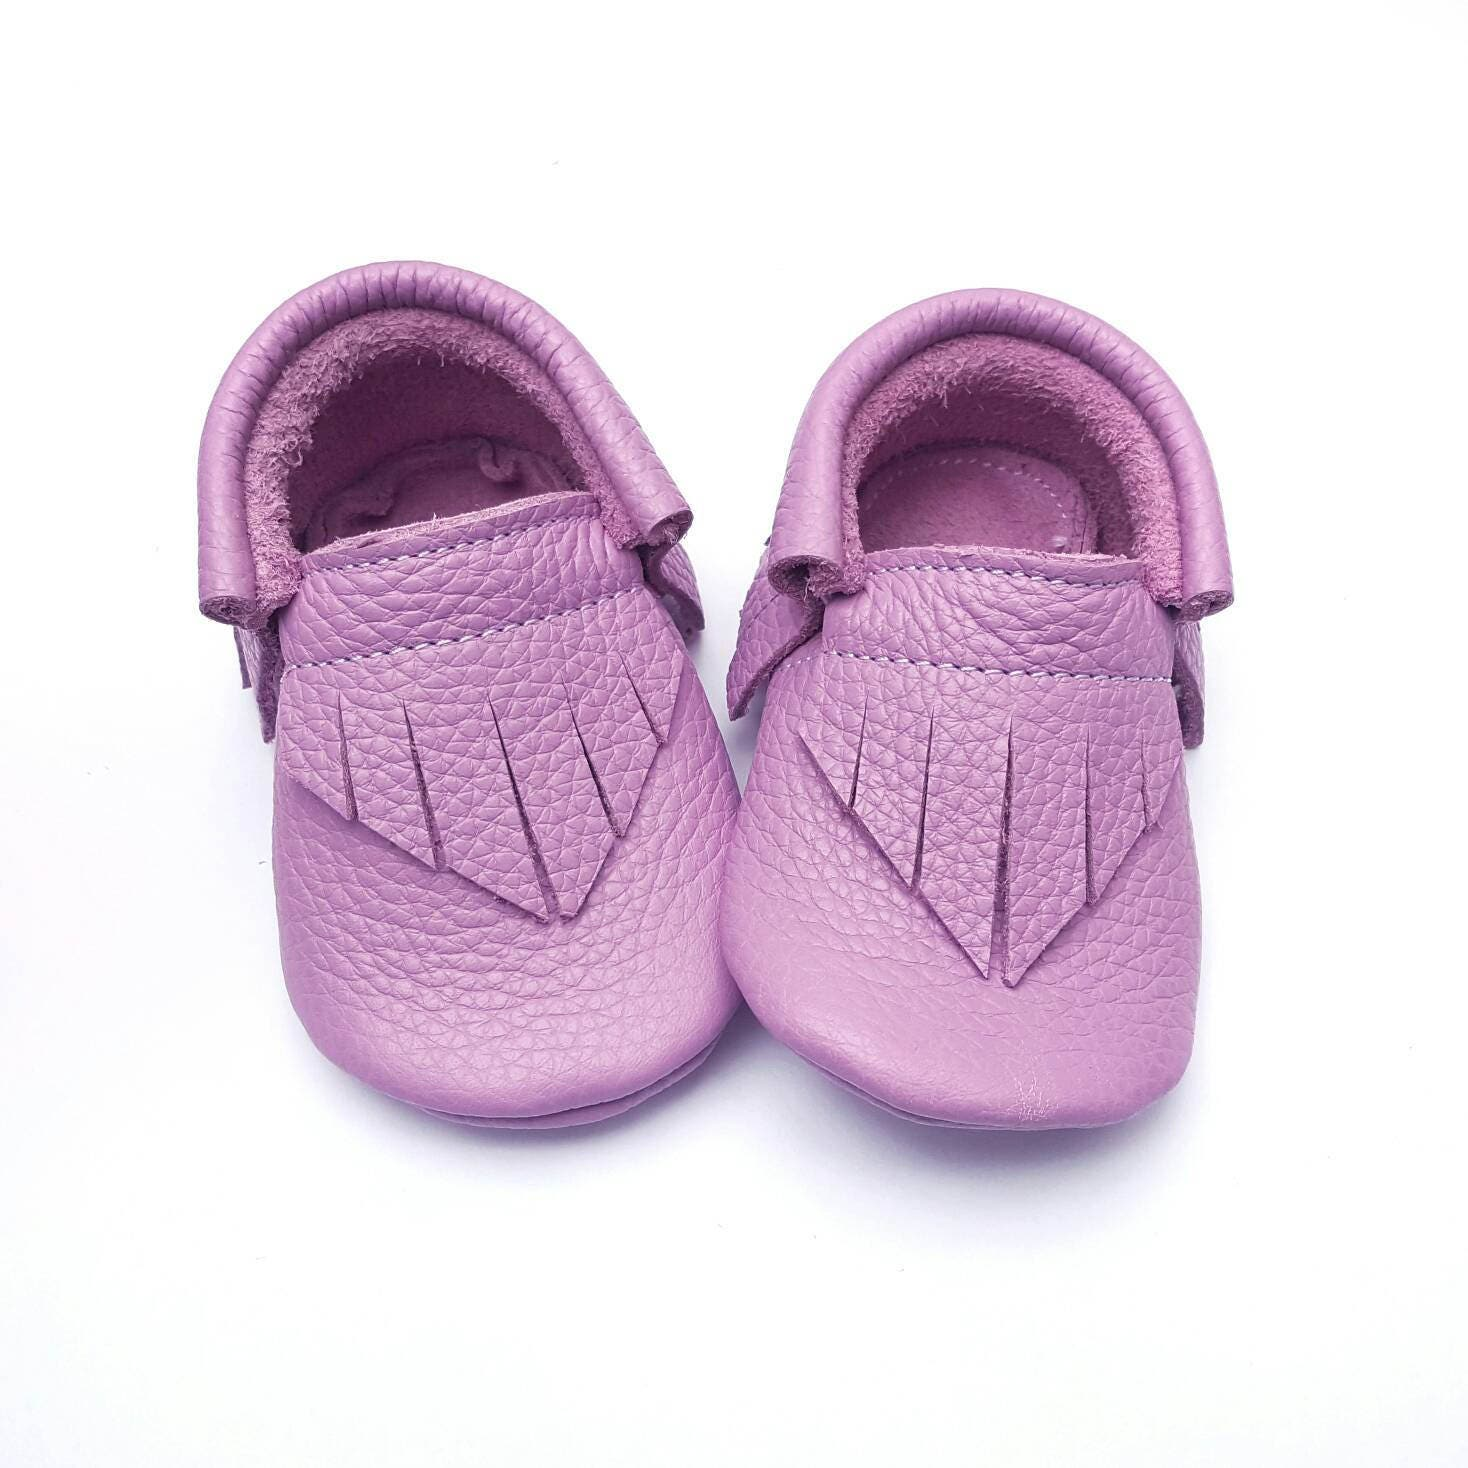 Baby Girl Shoes Taffy Purple Moccs baby shoes baby moccs